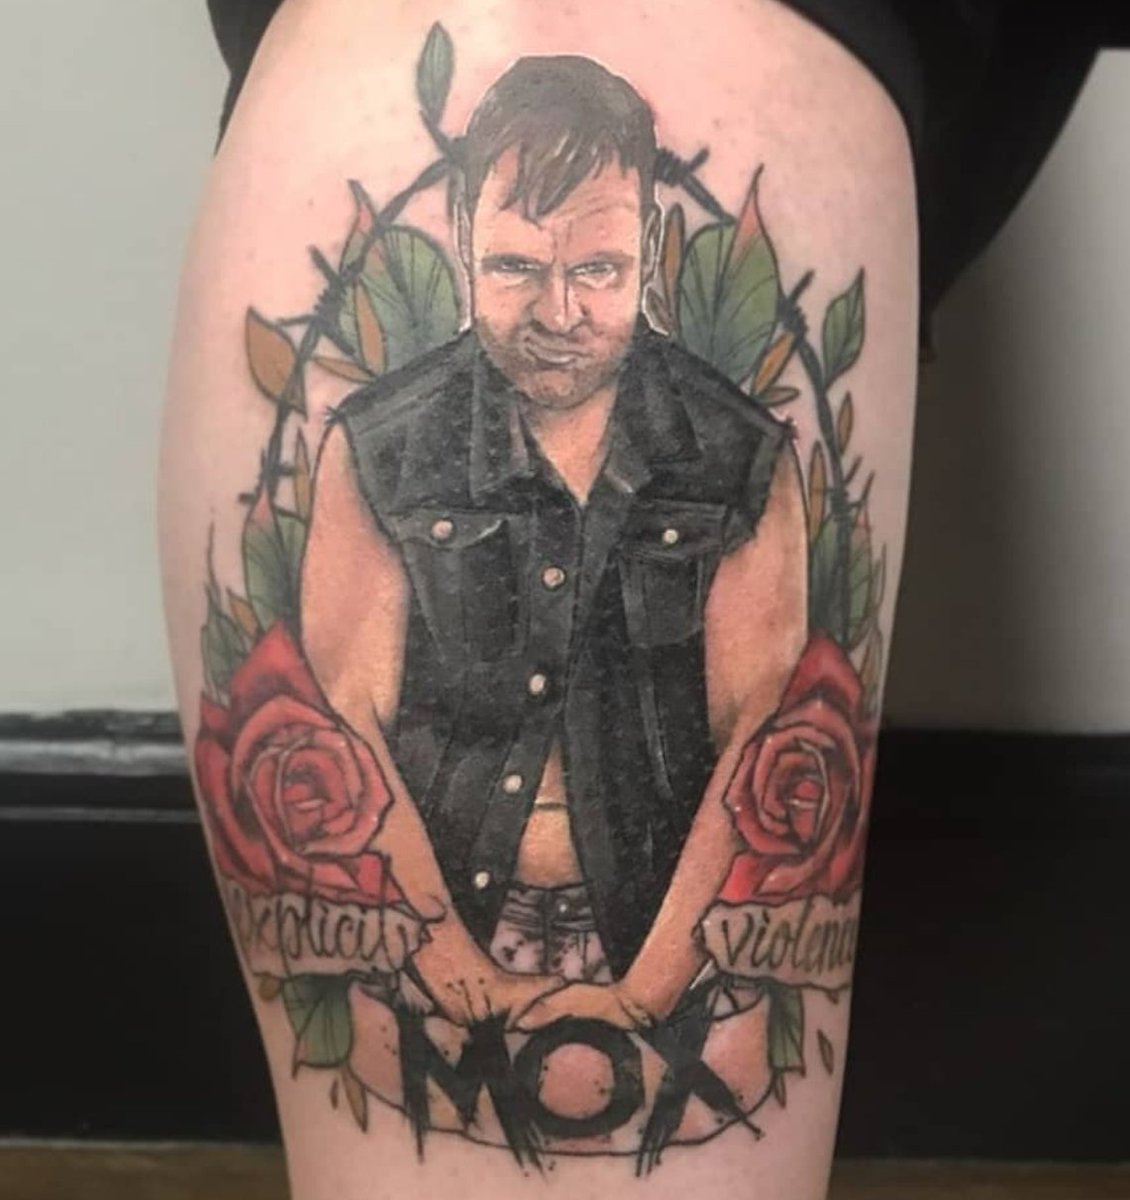 Just cause I went to pin it. Ladies and gentlemen, my @JonMoxley tattoo.. (fresh)